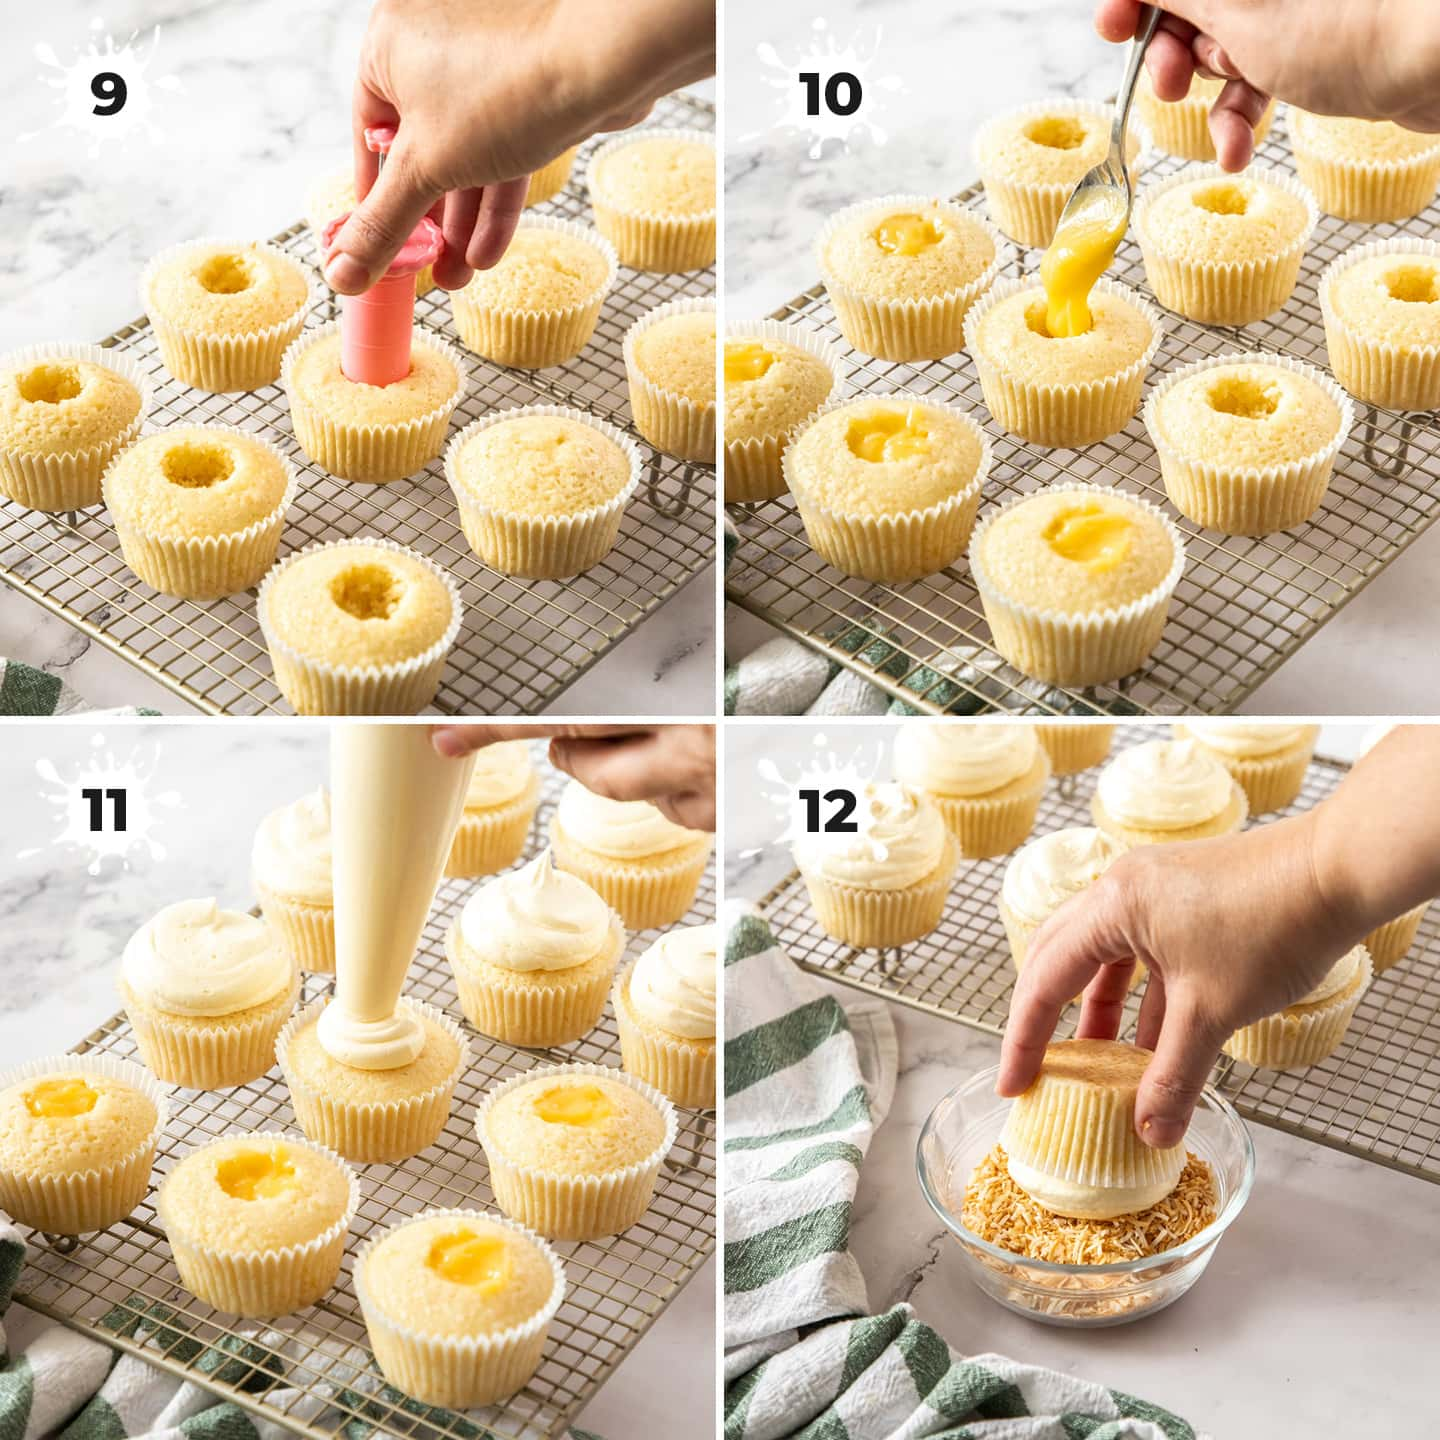 4 images showing how to fill and top cupcakes